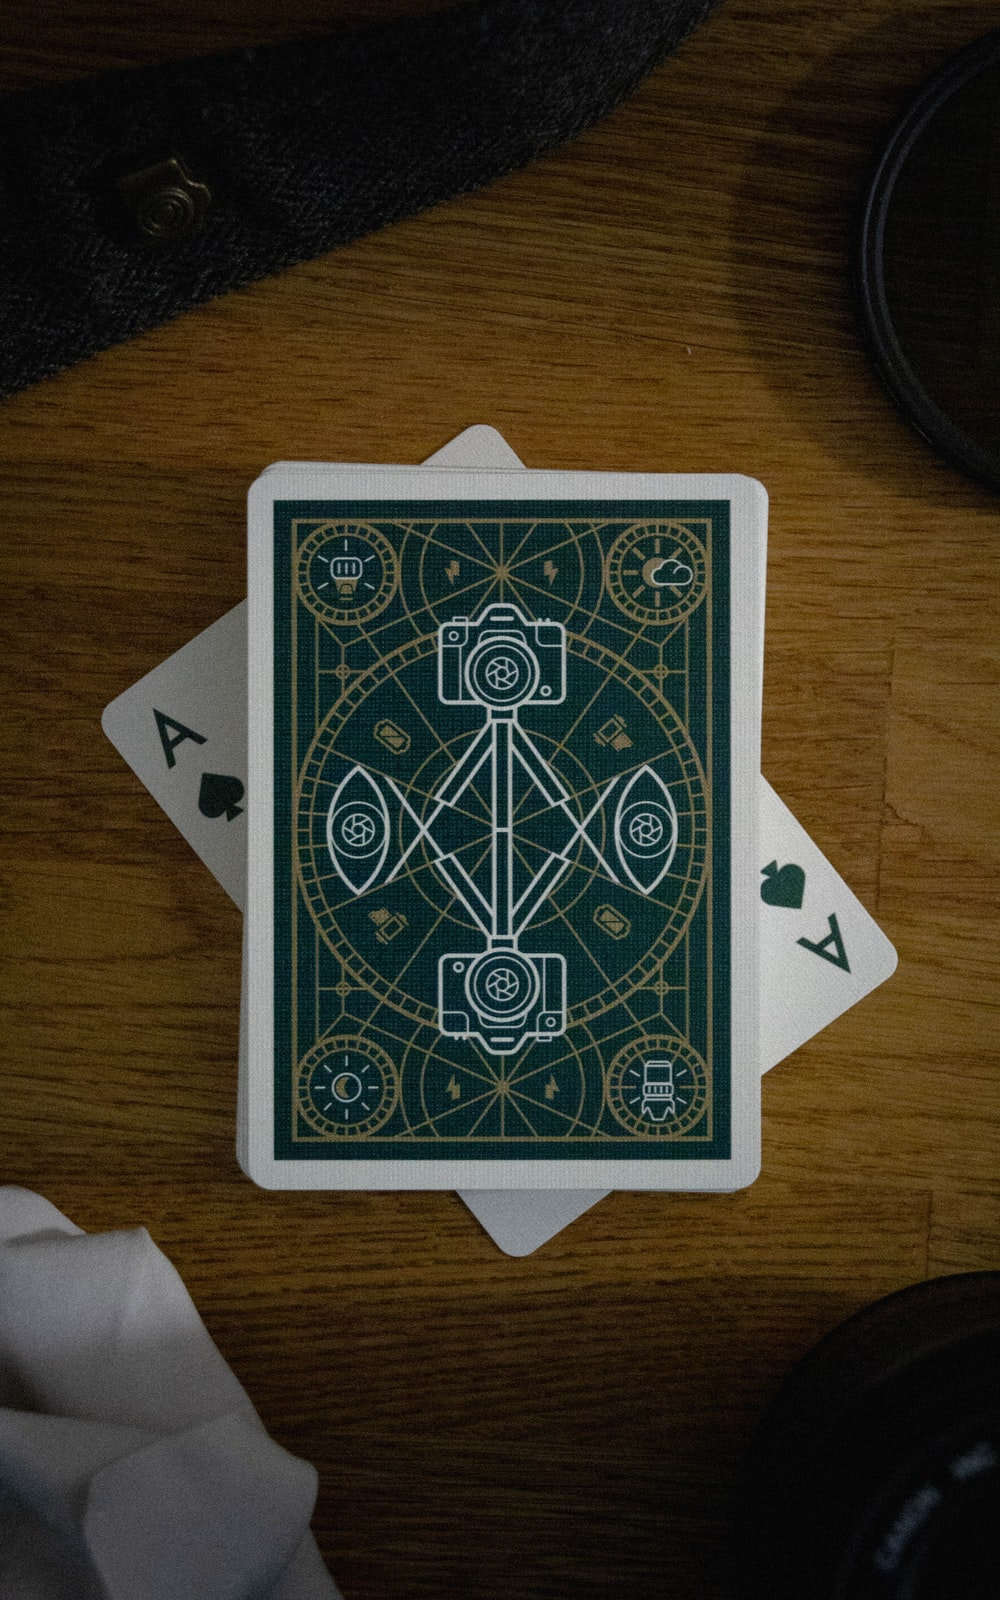 green and white playing card on brown wooden table